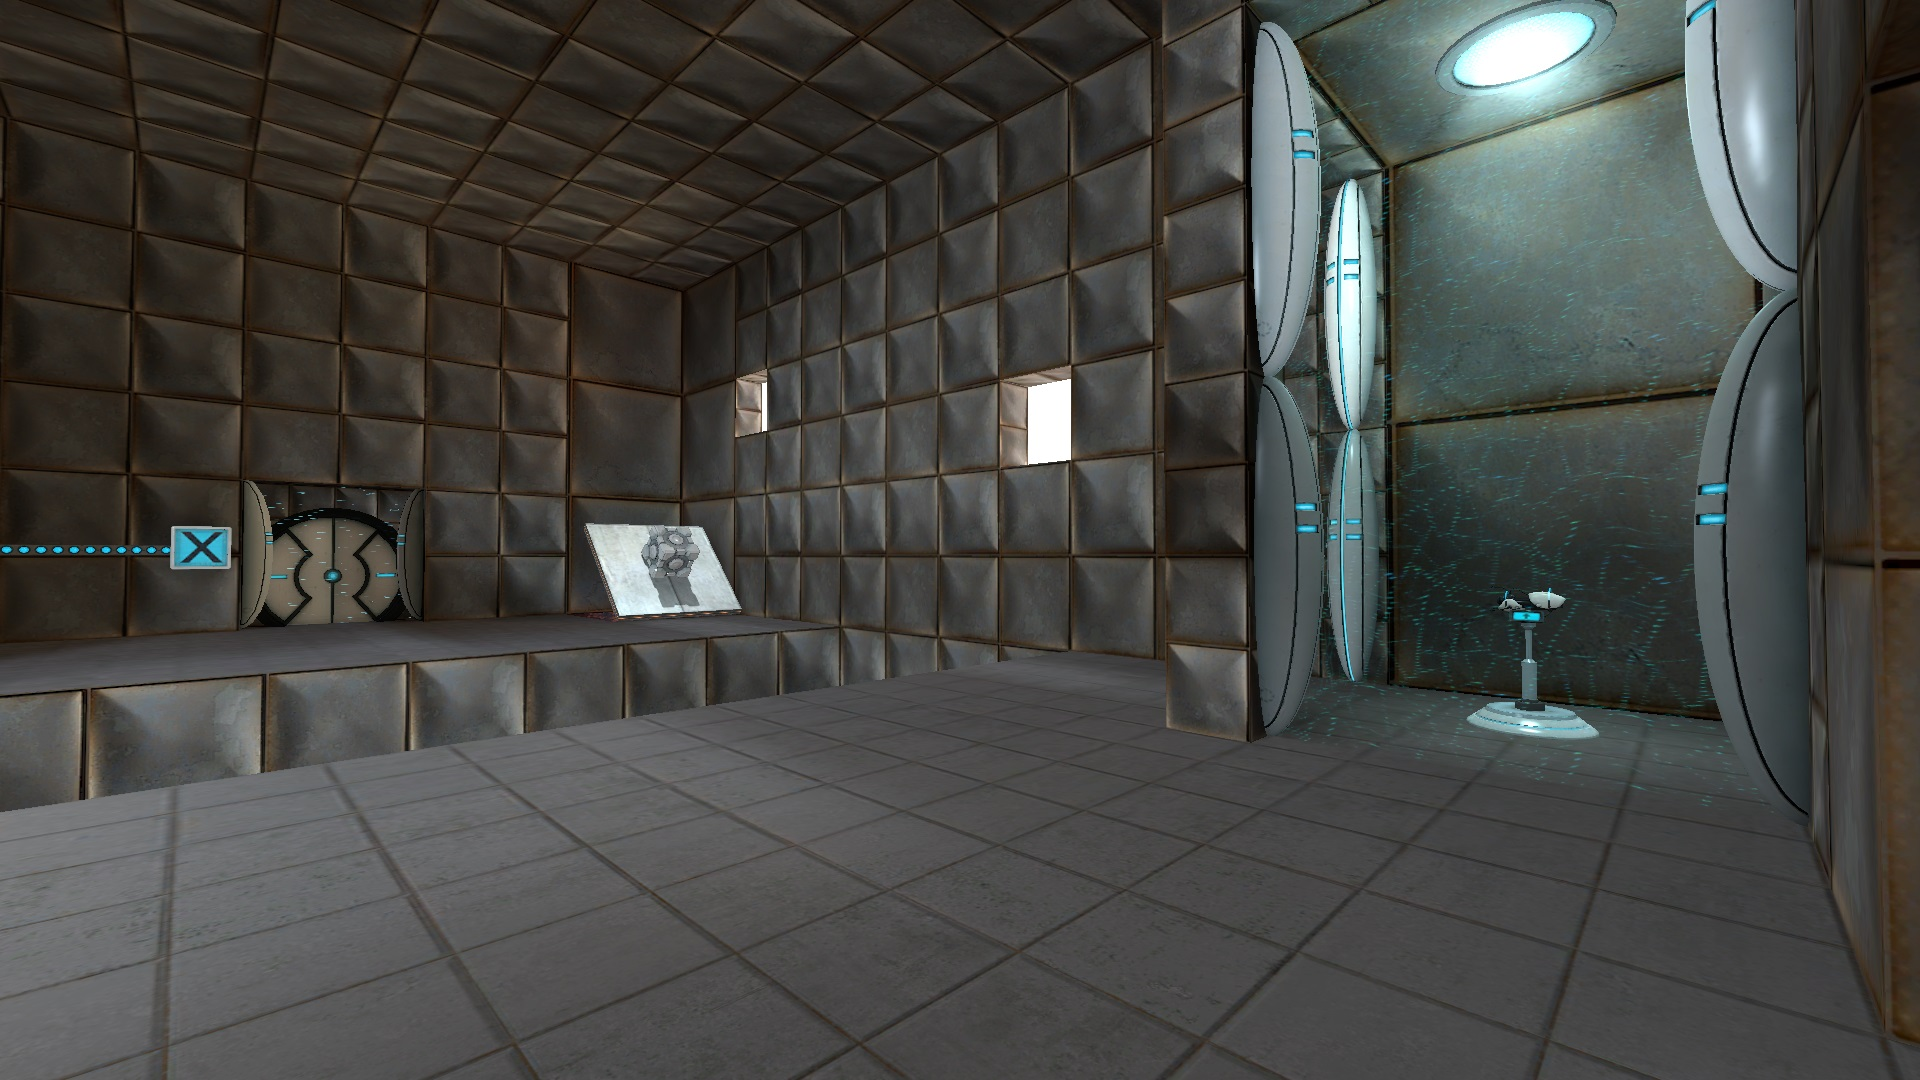 The second tutorial room has a cube on an angled panel the portal device can fire at.